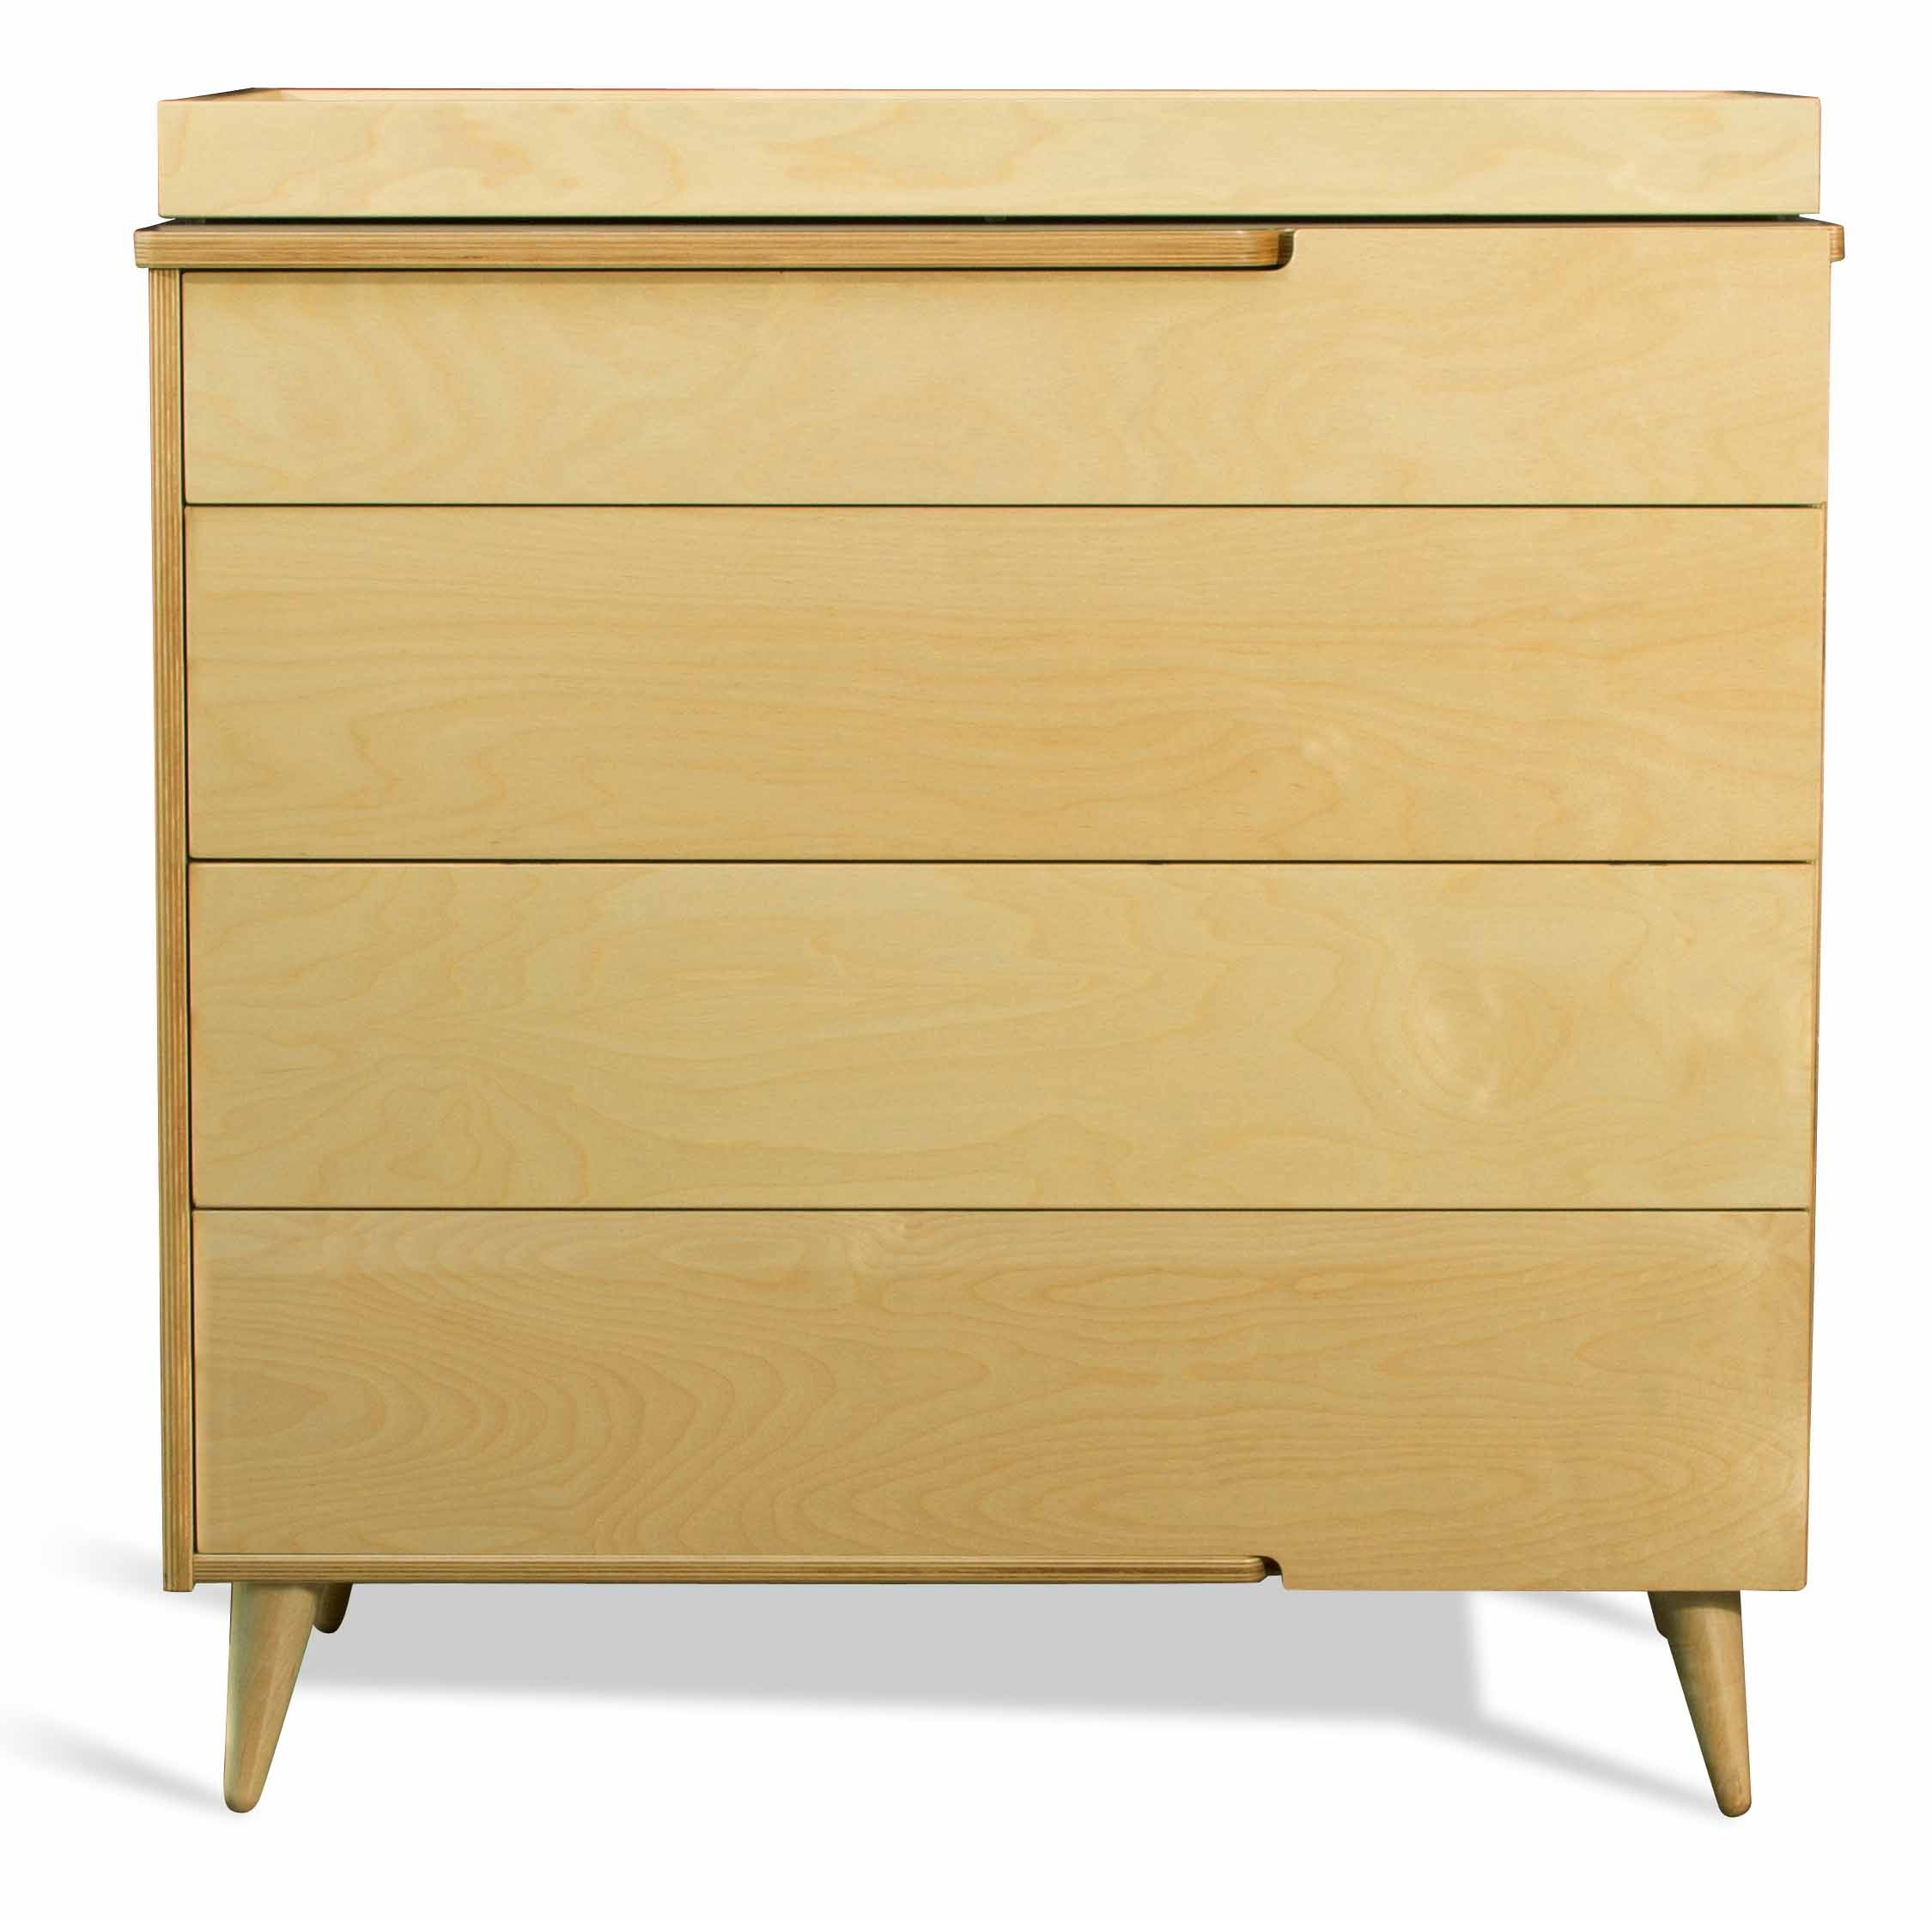 Wall Mounted Changing Table | Dresser Baby Changing Table | Changing Table Dresser